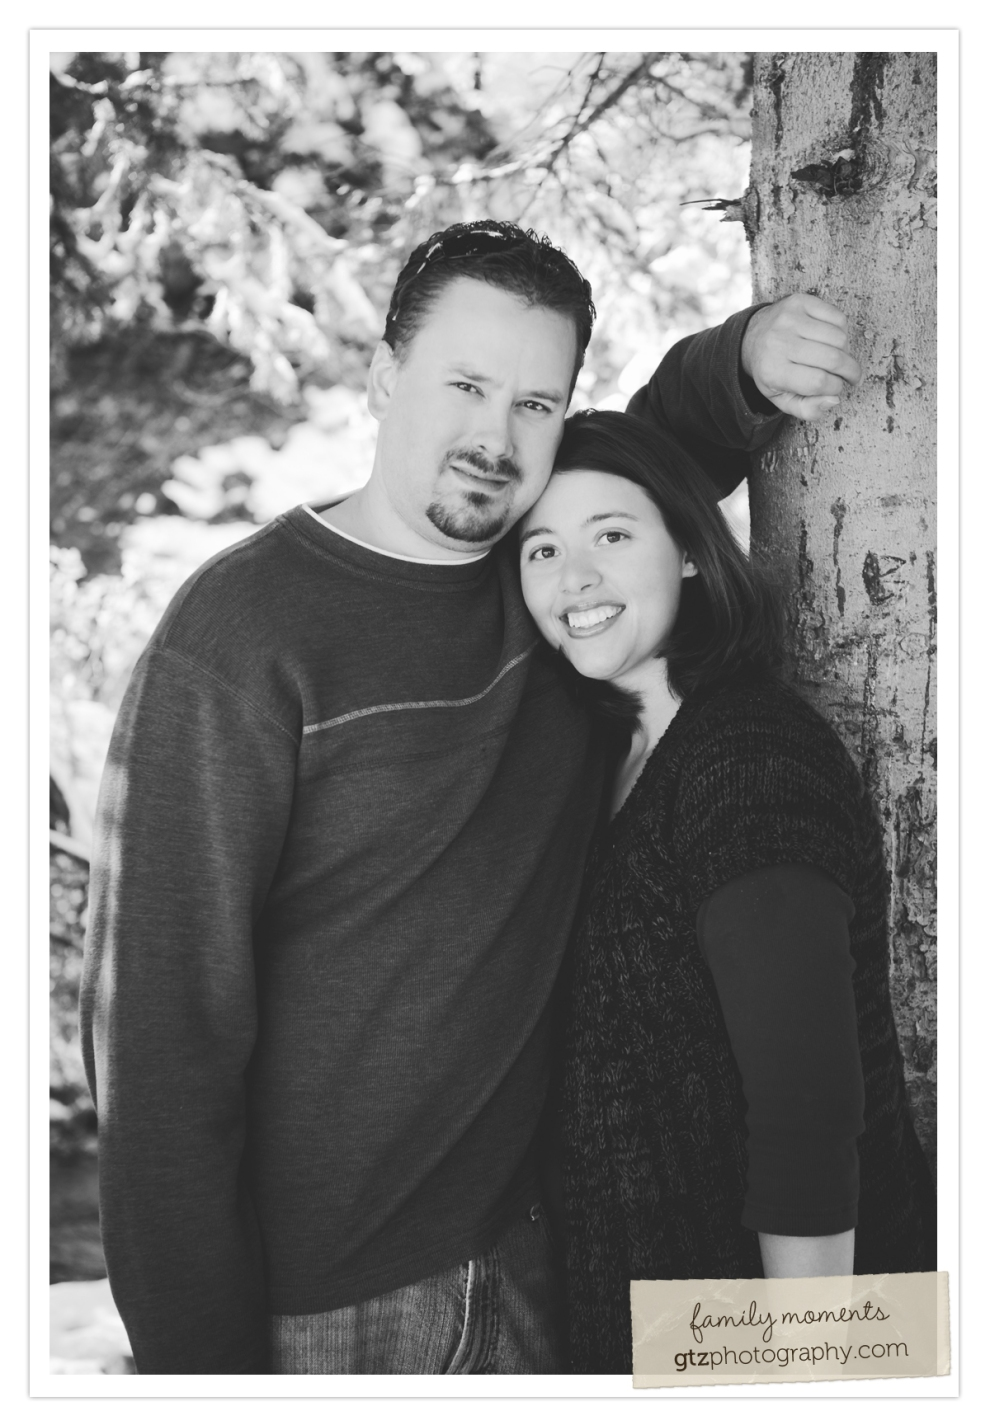 husband and wife black and white portrait by a tree